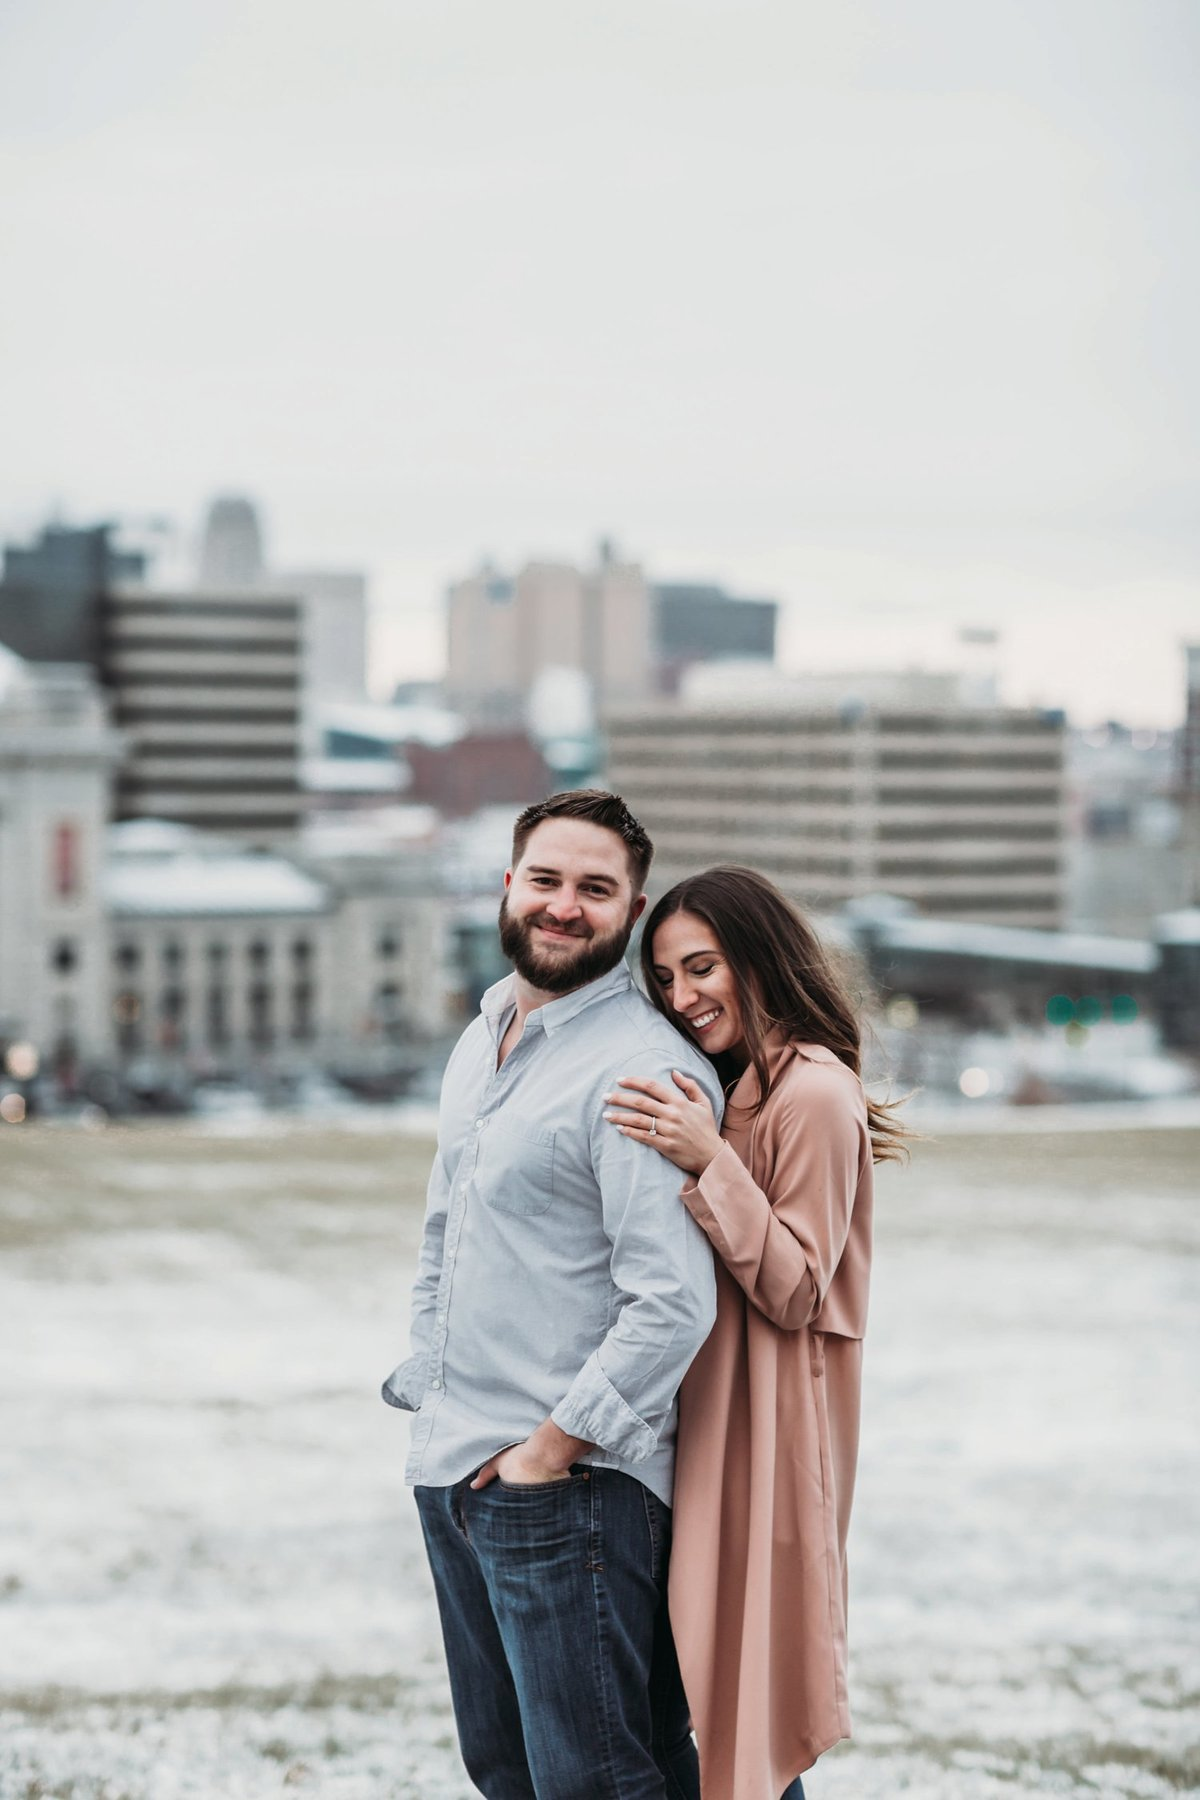 Kansas City Salt Lake City Destination Wedding Photographer_0444